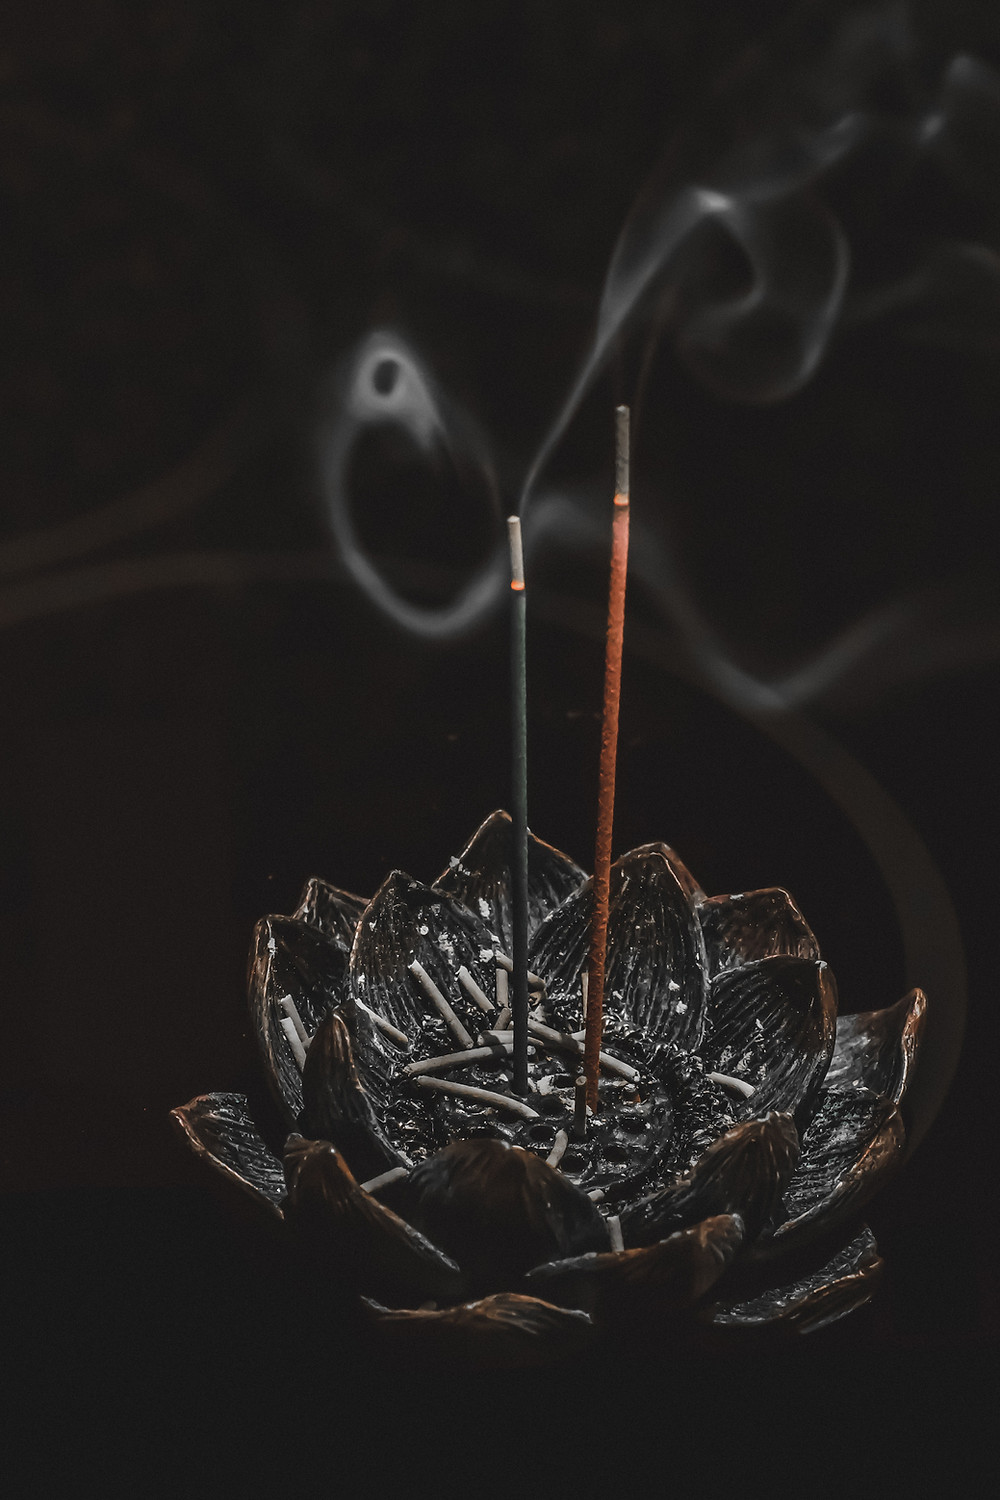 picture of incense sticks in a lotus flower holder energy cleansing